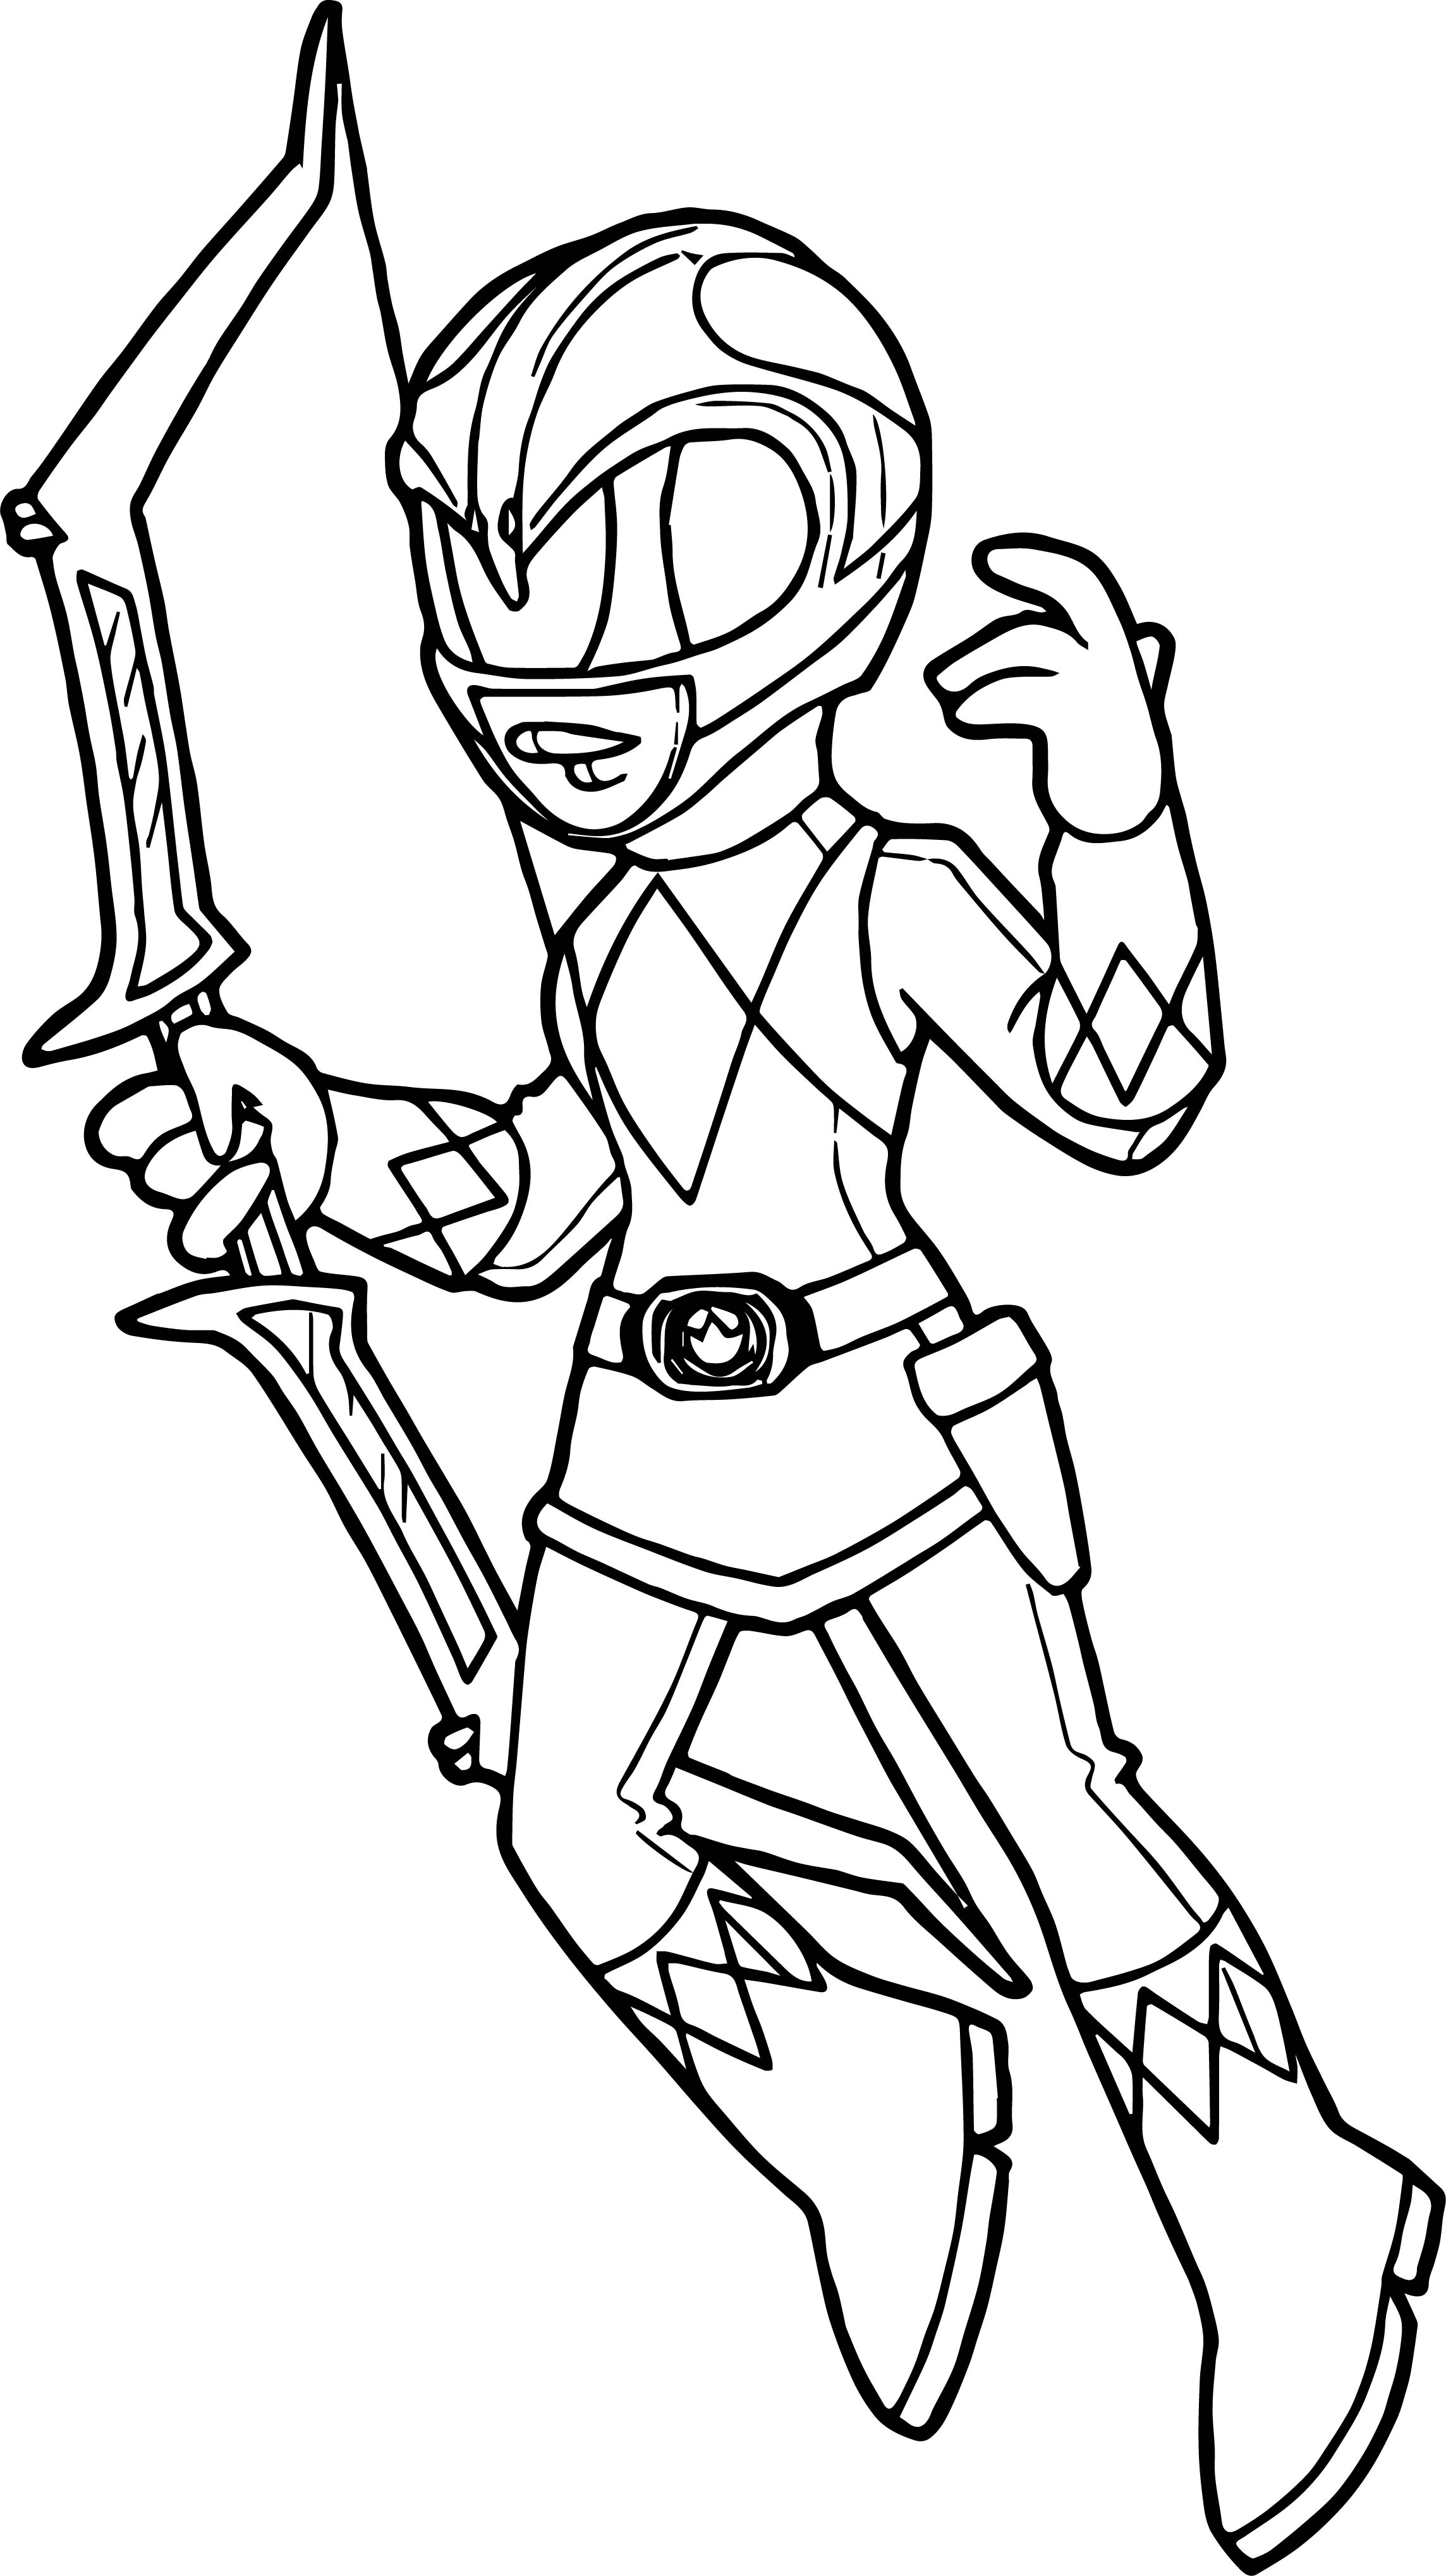 power ranger coloring pages free power rangers ninja steel free coloring pages pages coloring free power ranger